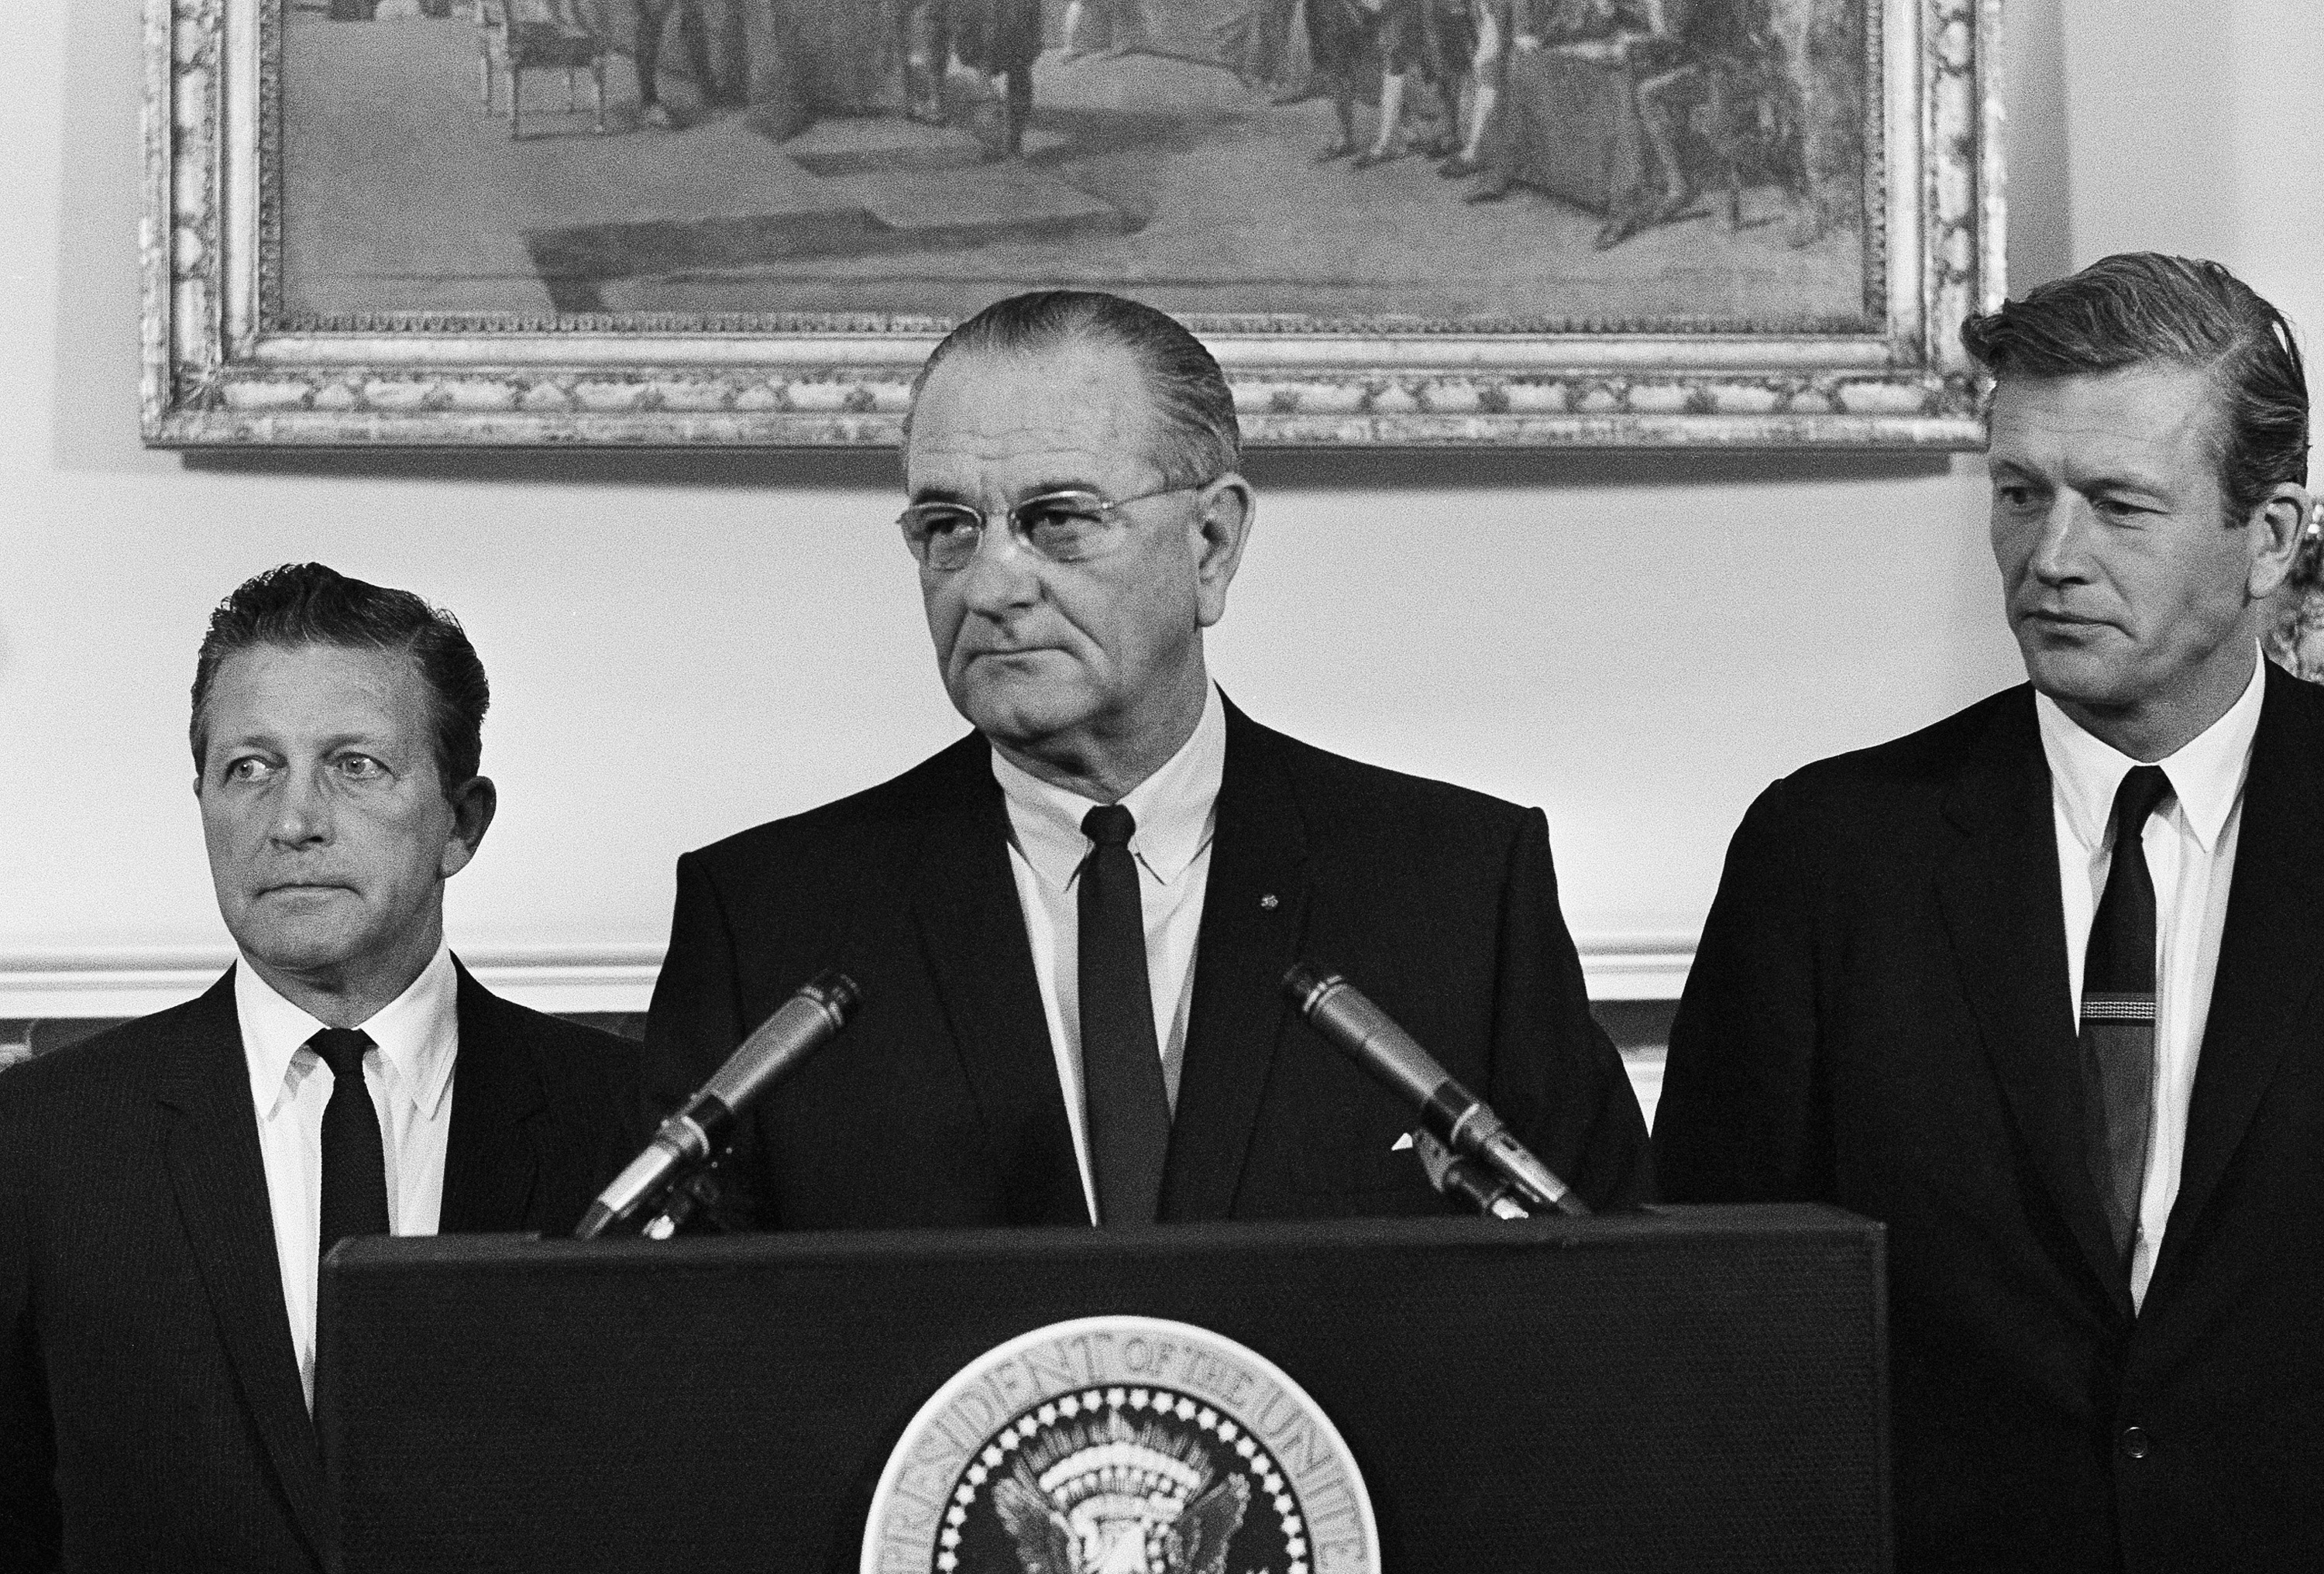 President Lyndon Johnson speaks to members of his advisory commission on civil disorders at the group's first meeting on July 29, 1967 at the White House in Washington.